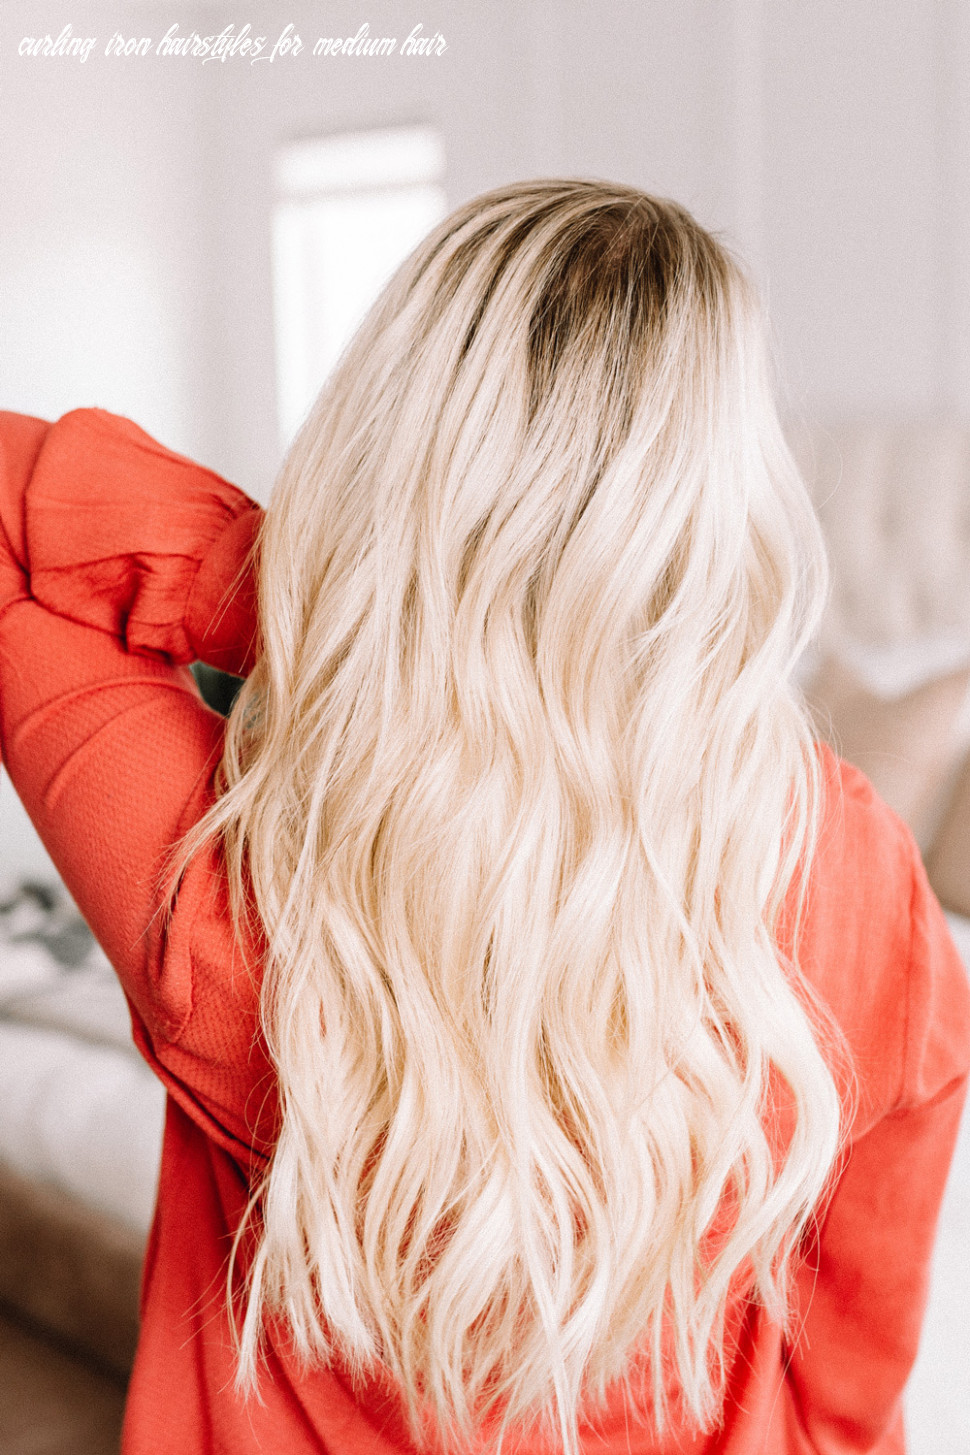 How to curl hair with a curling wand! twist me pretty curling iron hairstyles for medium hair